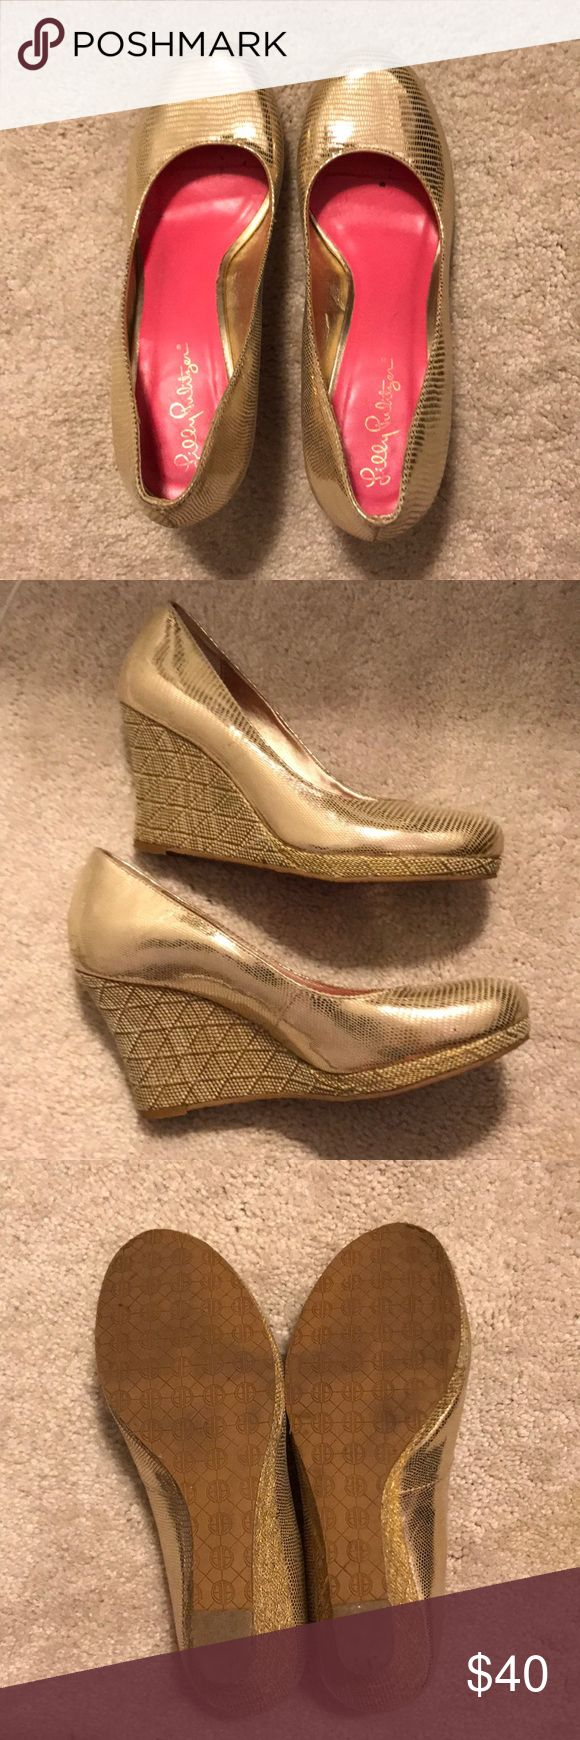 Lilly Pulitzer Gold Wedge Heels Super cute gold Lilly Pulitzer Wedge Heels. Lightly worn, no scuffs, but some wear on soles. Perfect for graduations, Easter events, or just to spruce up your outfit! Fit true to size and are comfortable. Lilly Pulitzer Shoes Wedges